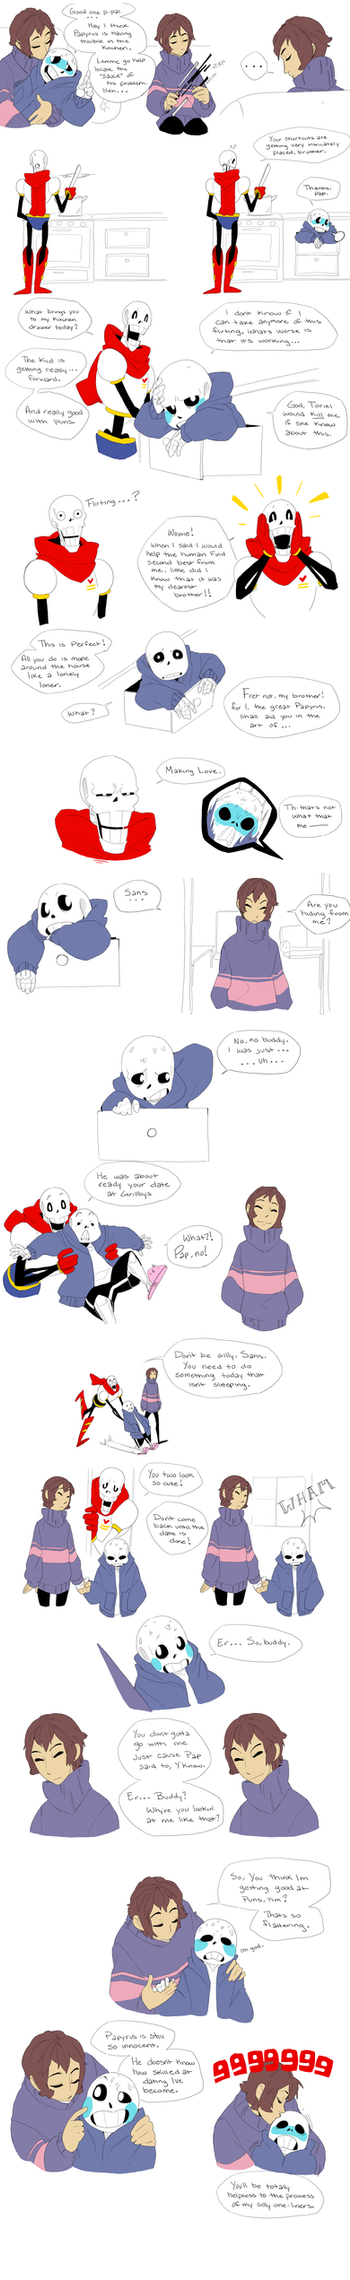 Dating - Undertale by Adzze